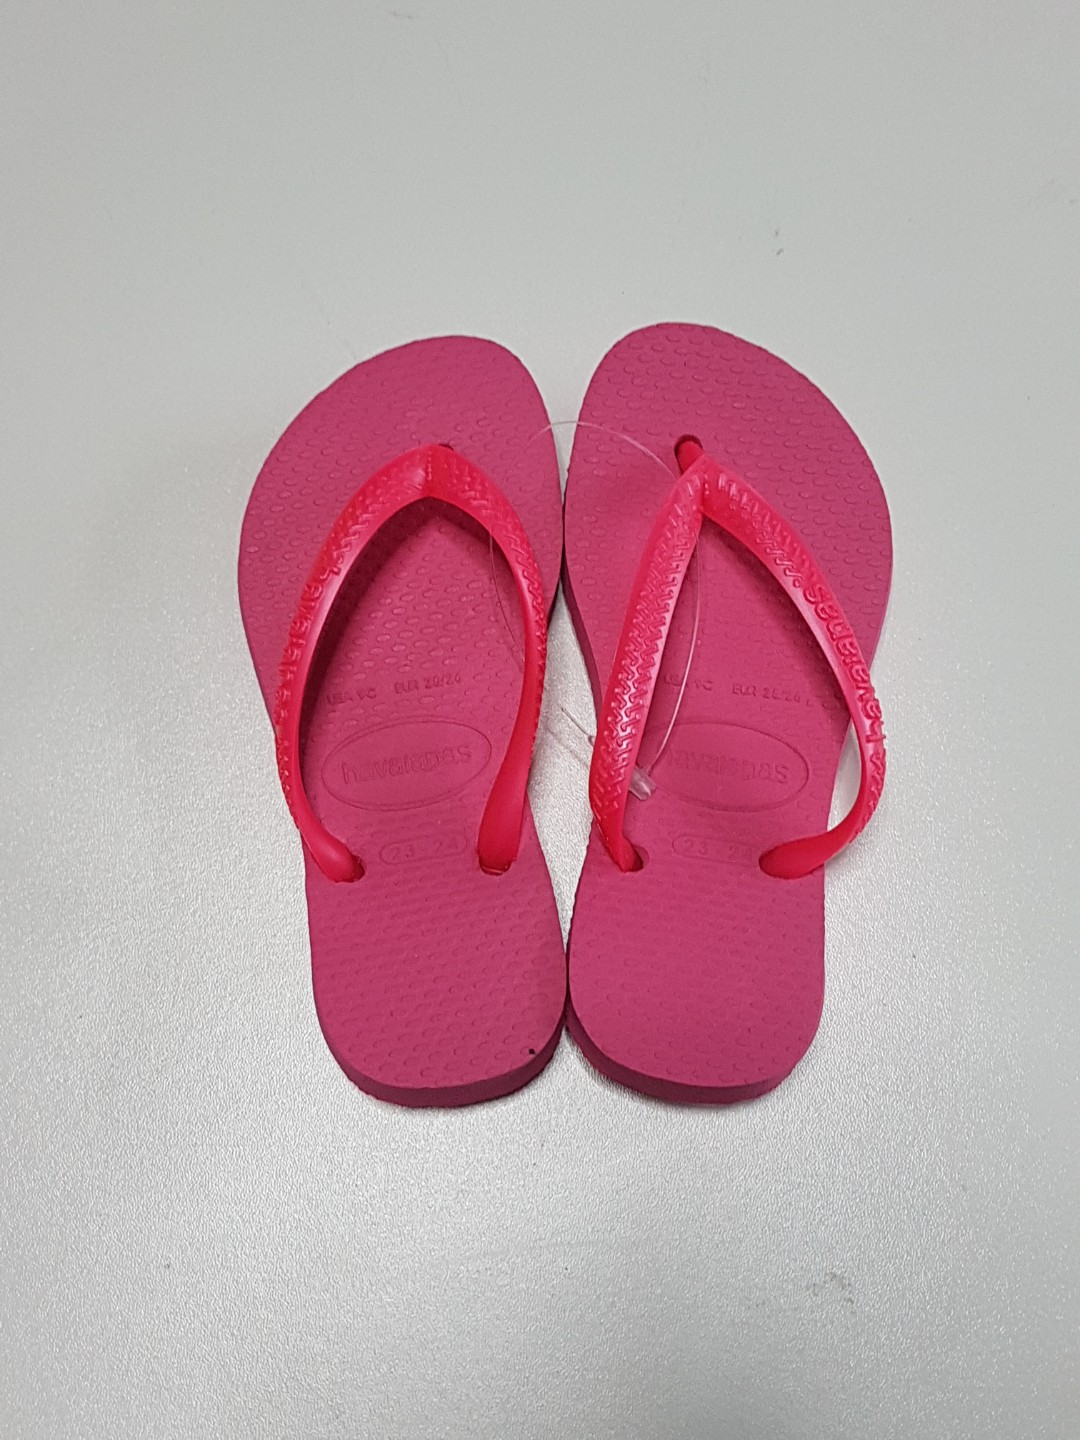 66c3cadaf4f57 Toddler s Havaianas Slippers